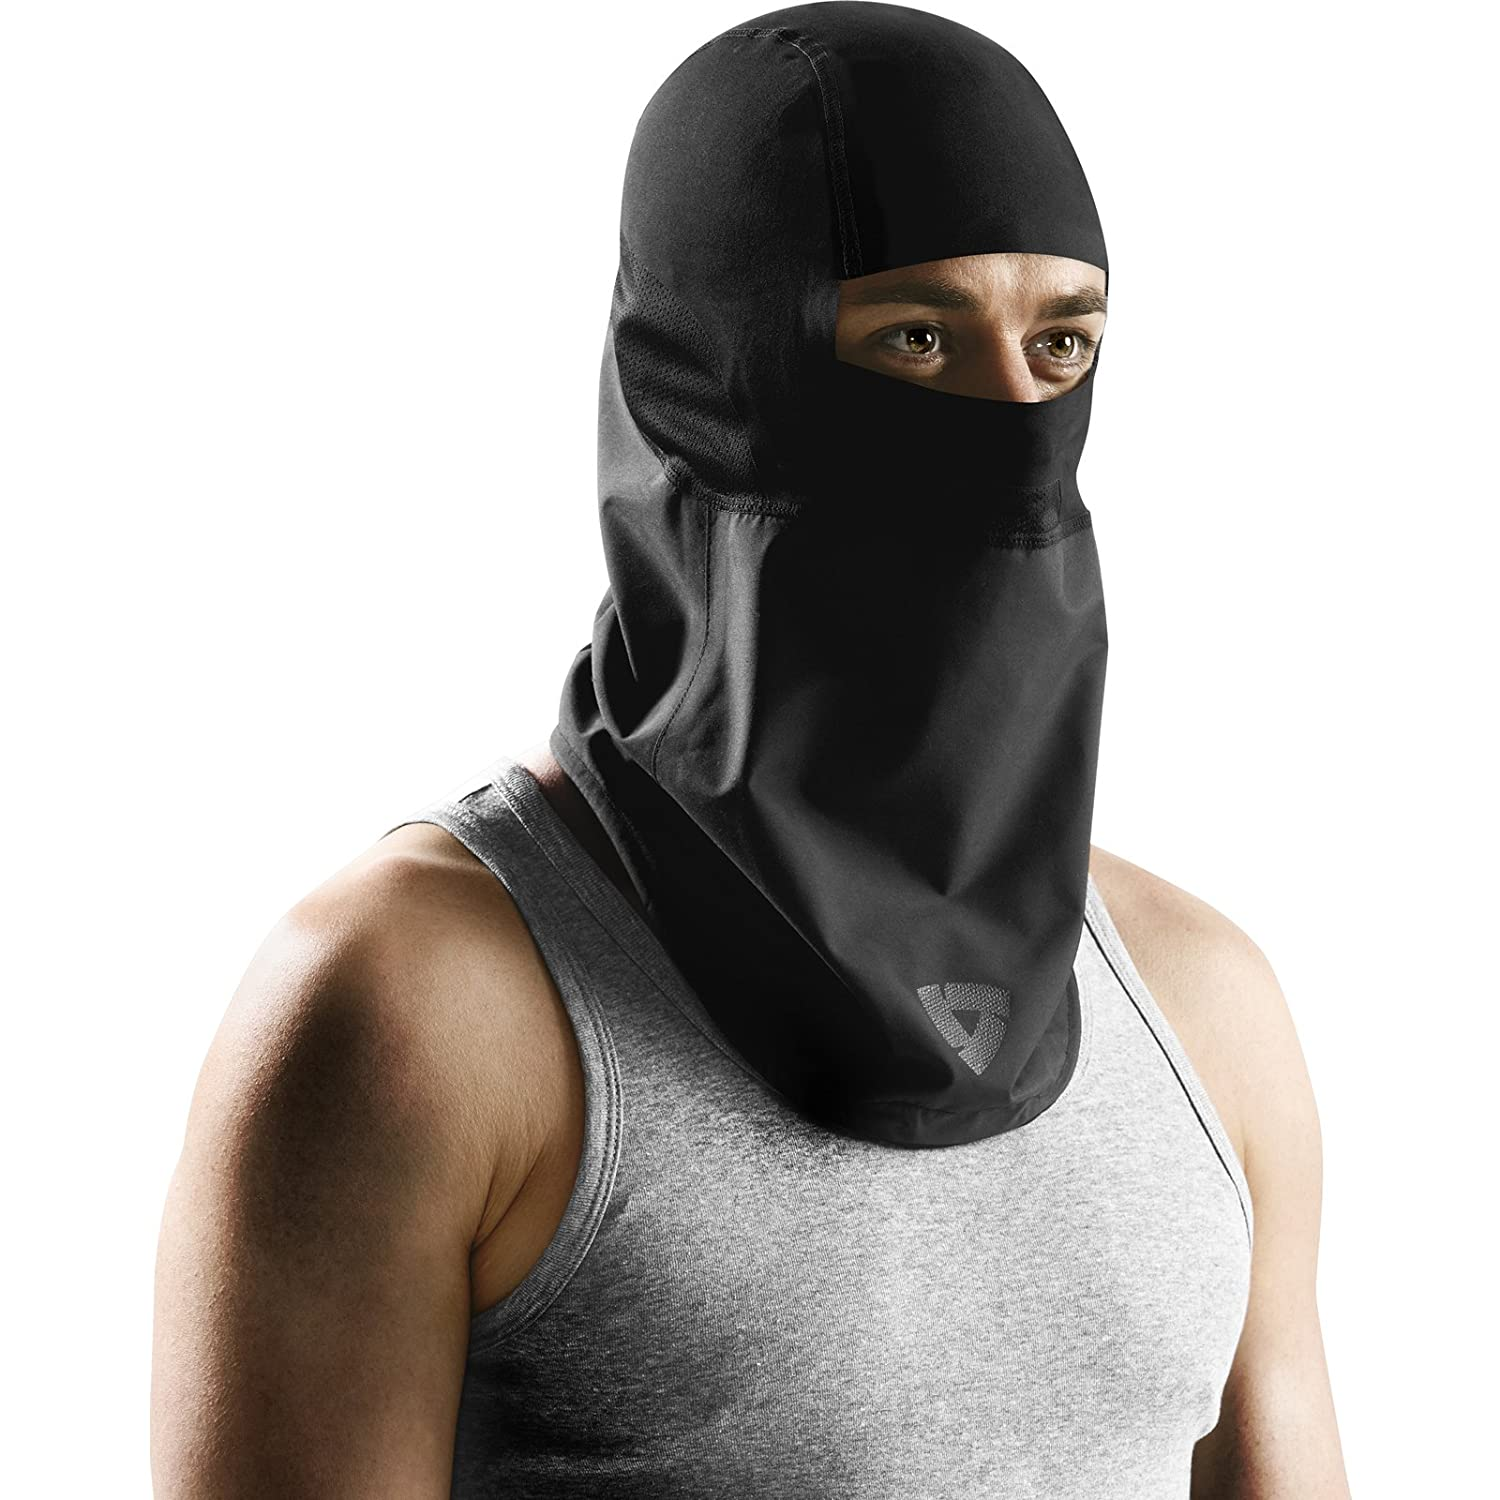 FAR033 - 0010-S - Rev It  GTX Balaclava S Black Rev' It 10002388